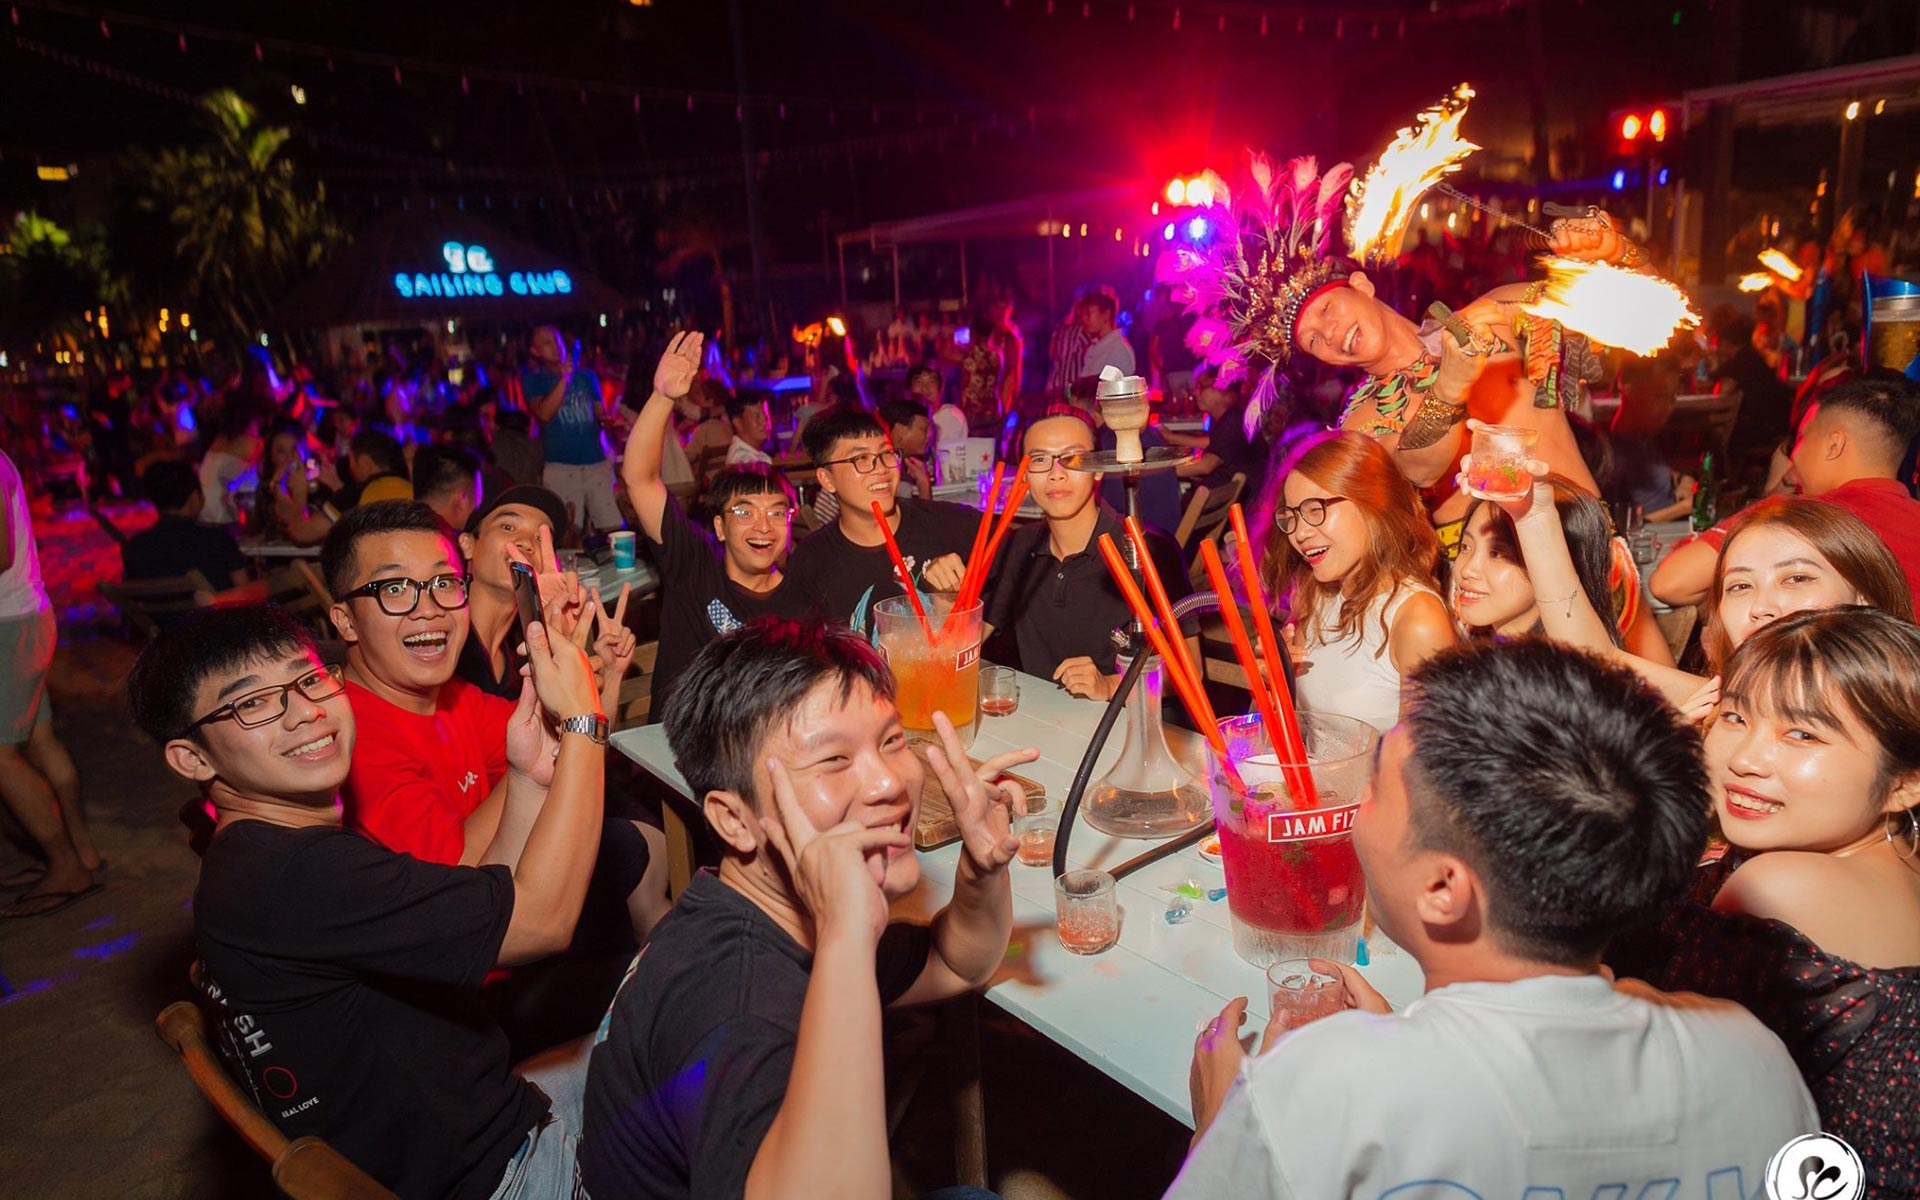 Many bars & night clubs along Tran Phu Street offer the sleepless atmosphere for the late night revelers.